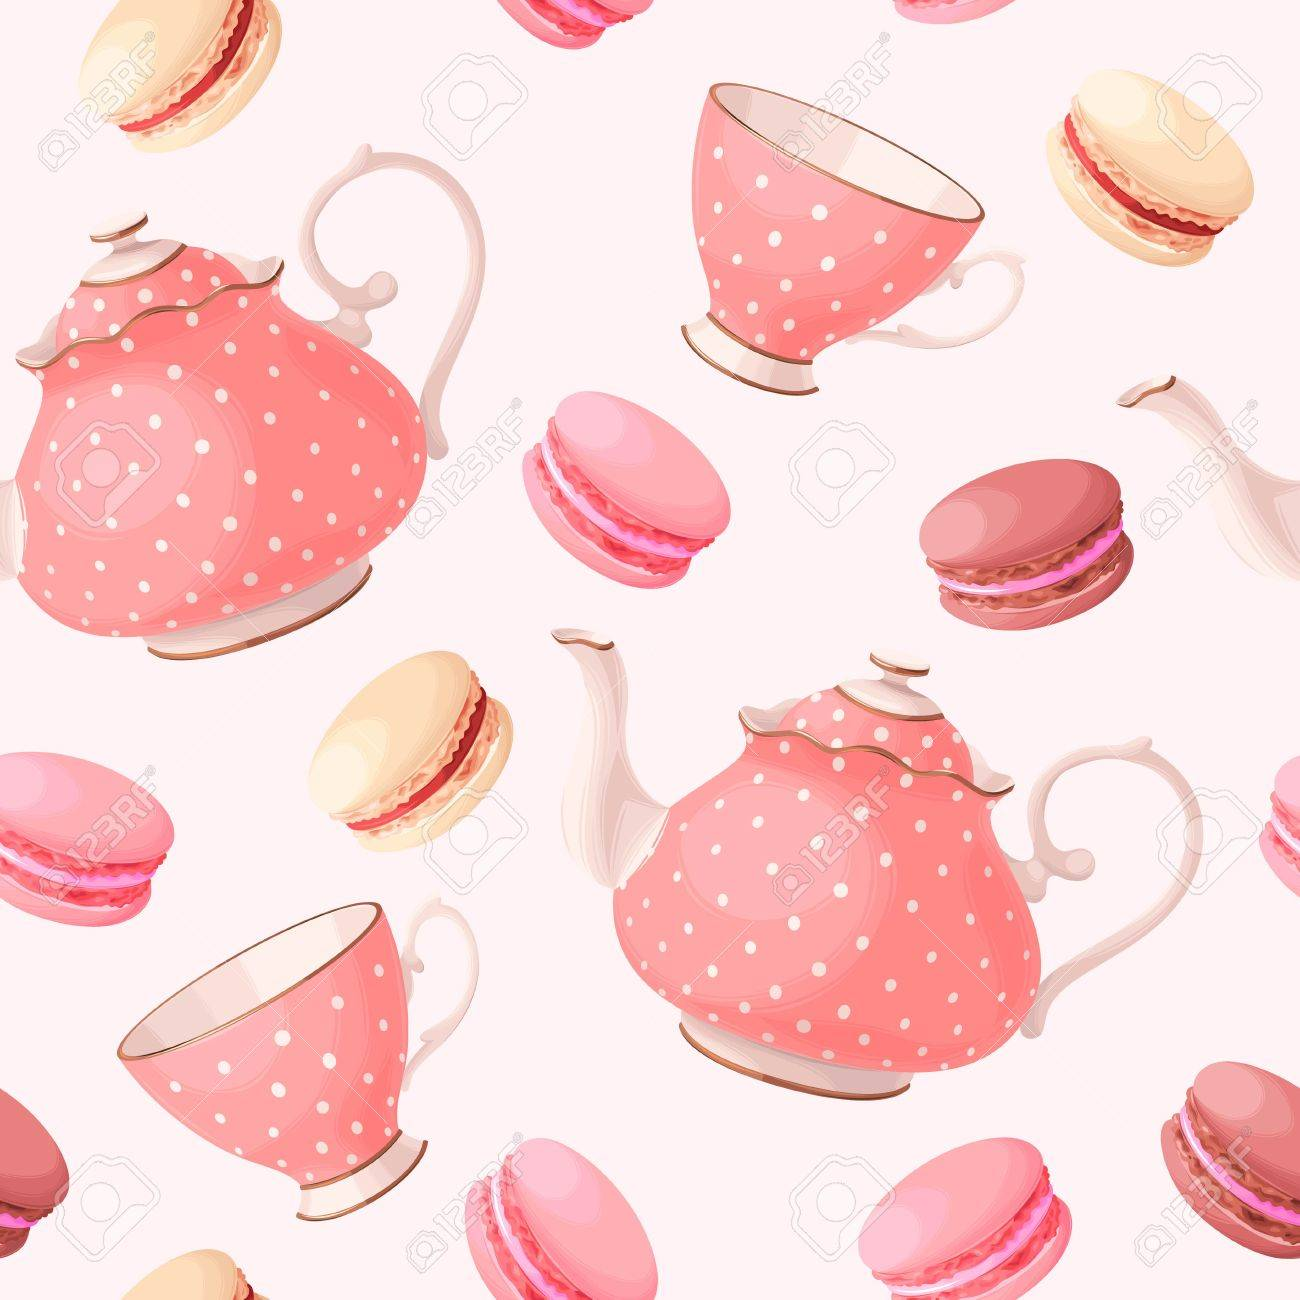 Vintage tea pots, cups and macaron vector seamless background - 63388709